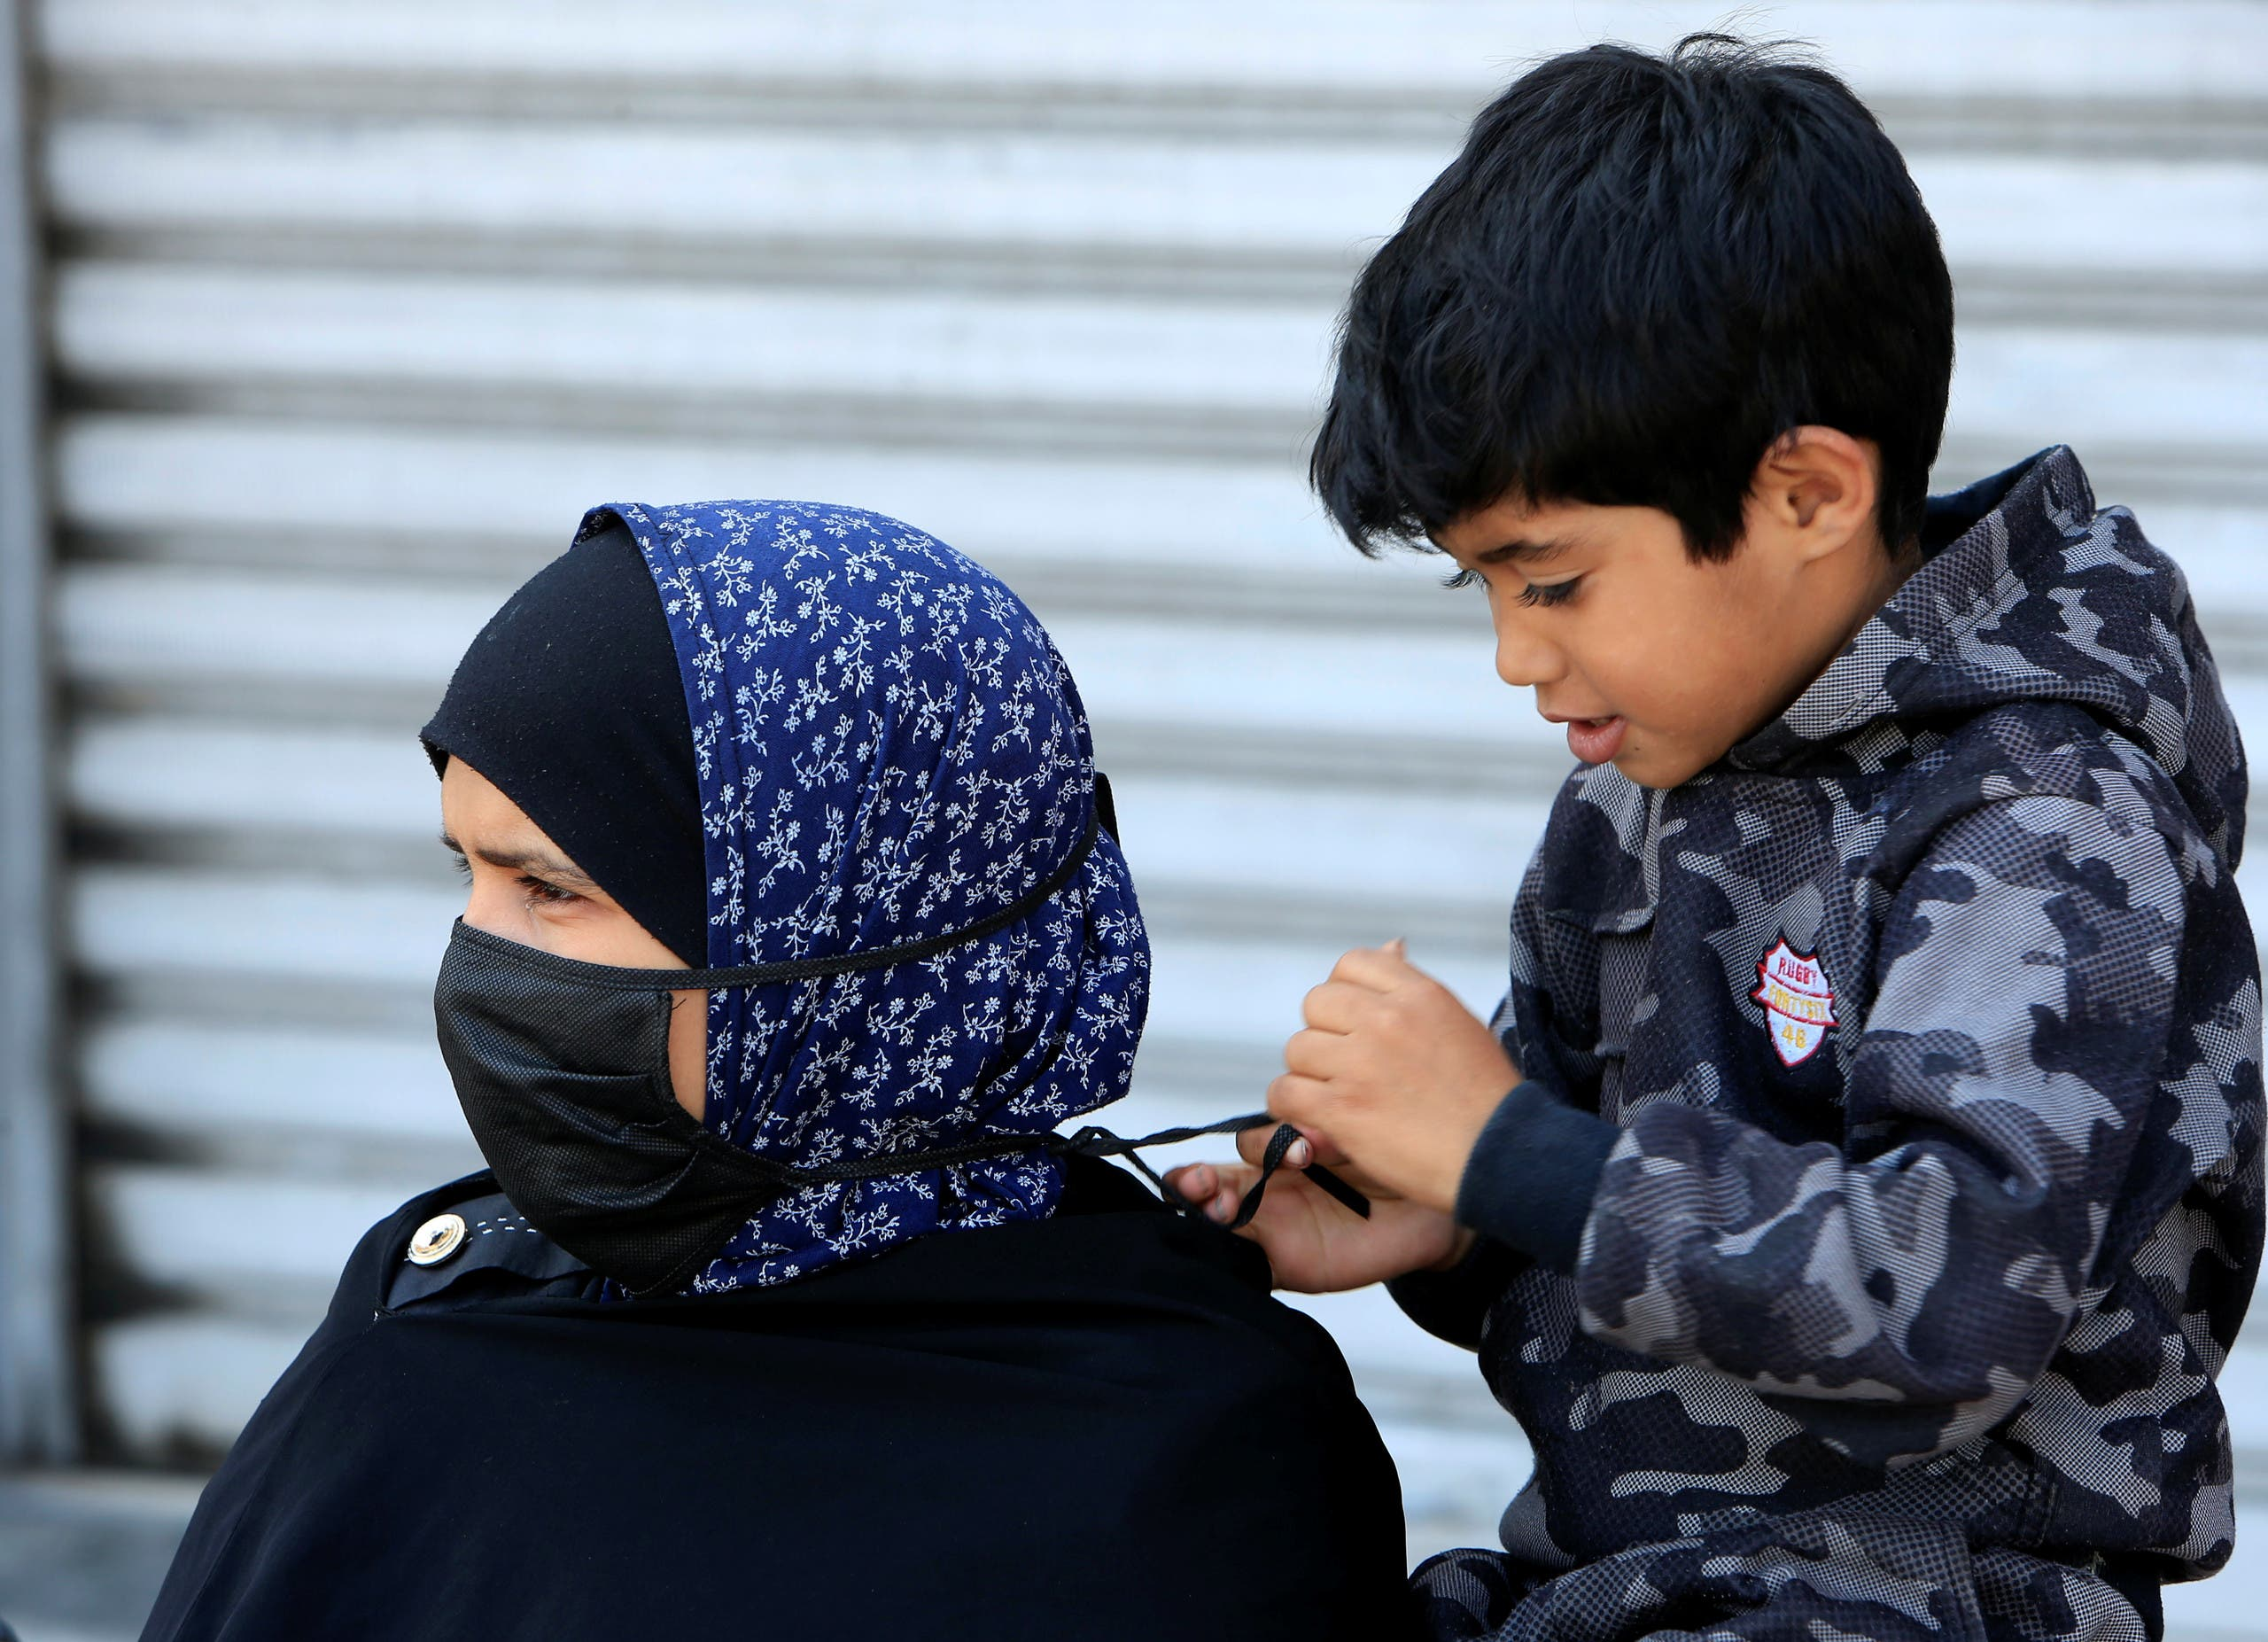 A boy helps his mother to put on a mask, during a countrywide lockdown to combat the spread of coronavirus disease (COVID-19) in Sidon, Lebanon April 28, 2020. (Reuters)